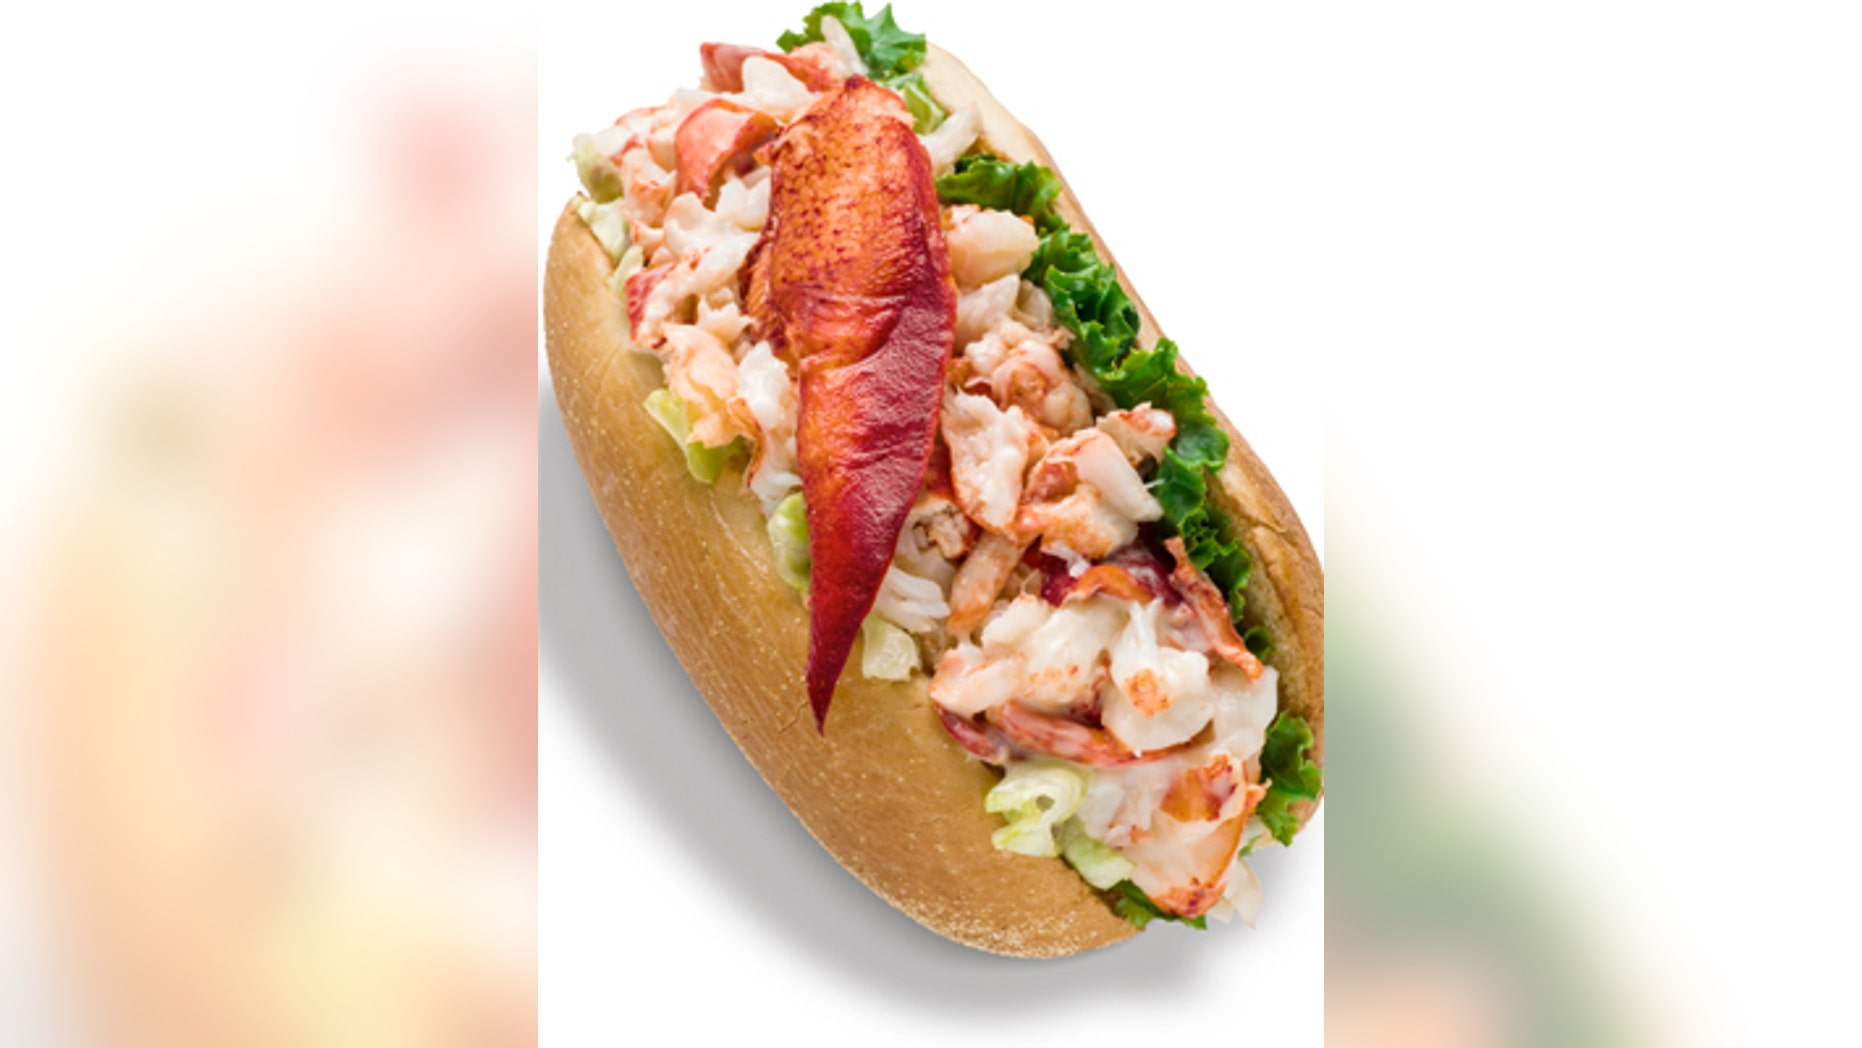 The Lobster Roll is only available at participating restaurants in New England and Canada for a limited time.